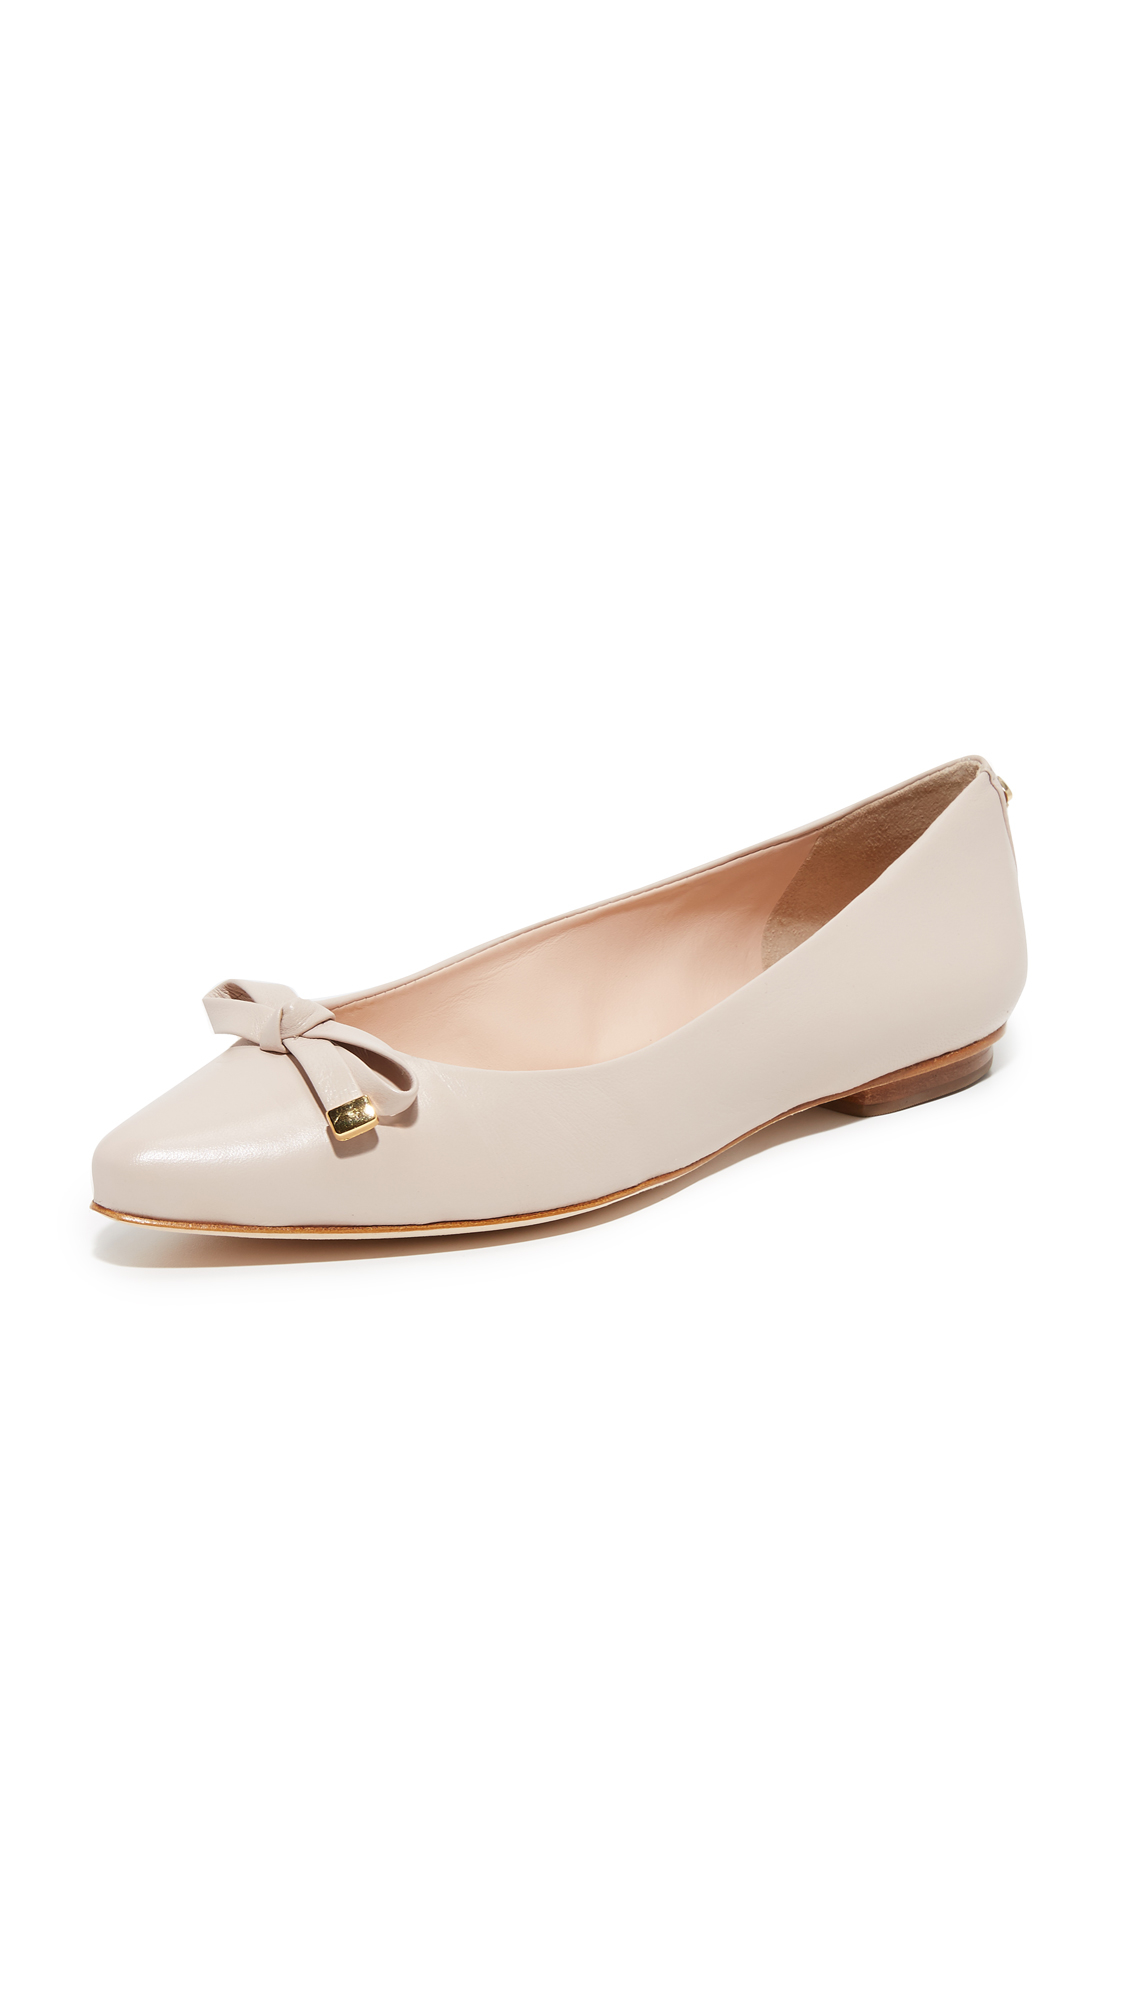 Lyst kate spade new york emma flats in natural for Kate spade new york flats